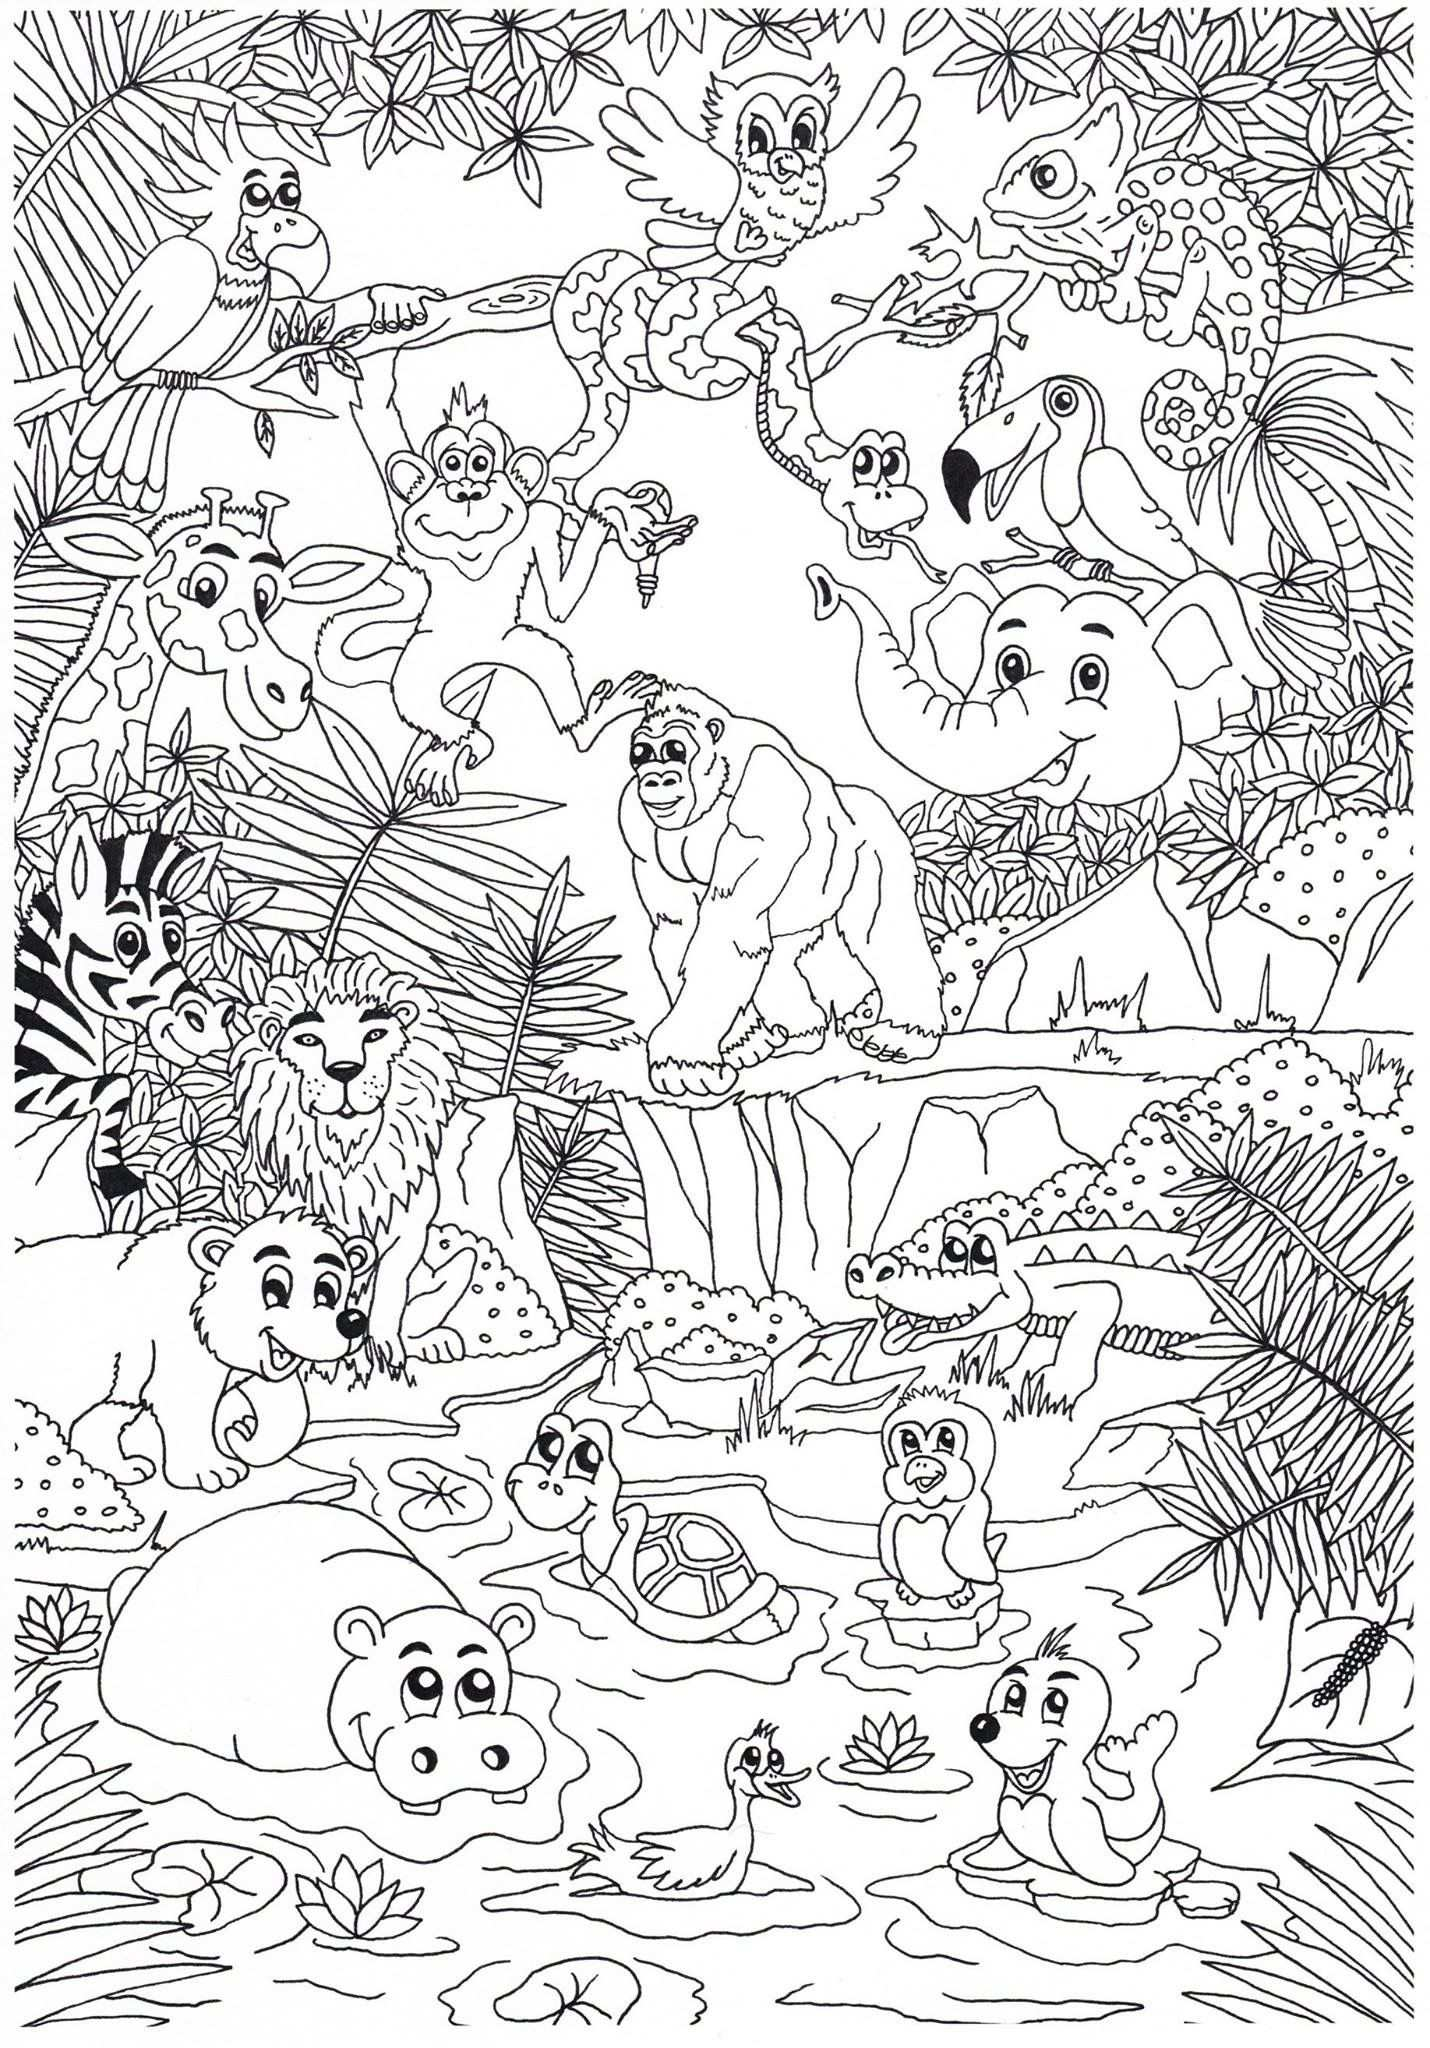 Coloring Page With Images Zoo Coloring Pages Jungle Coloring